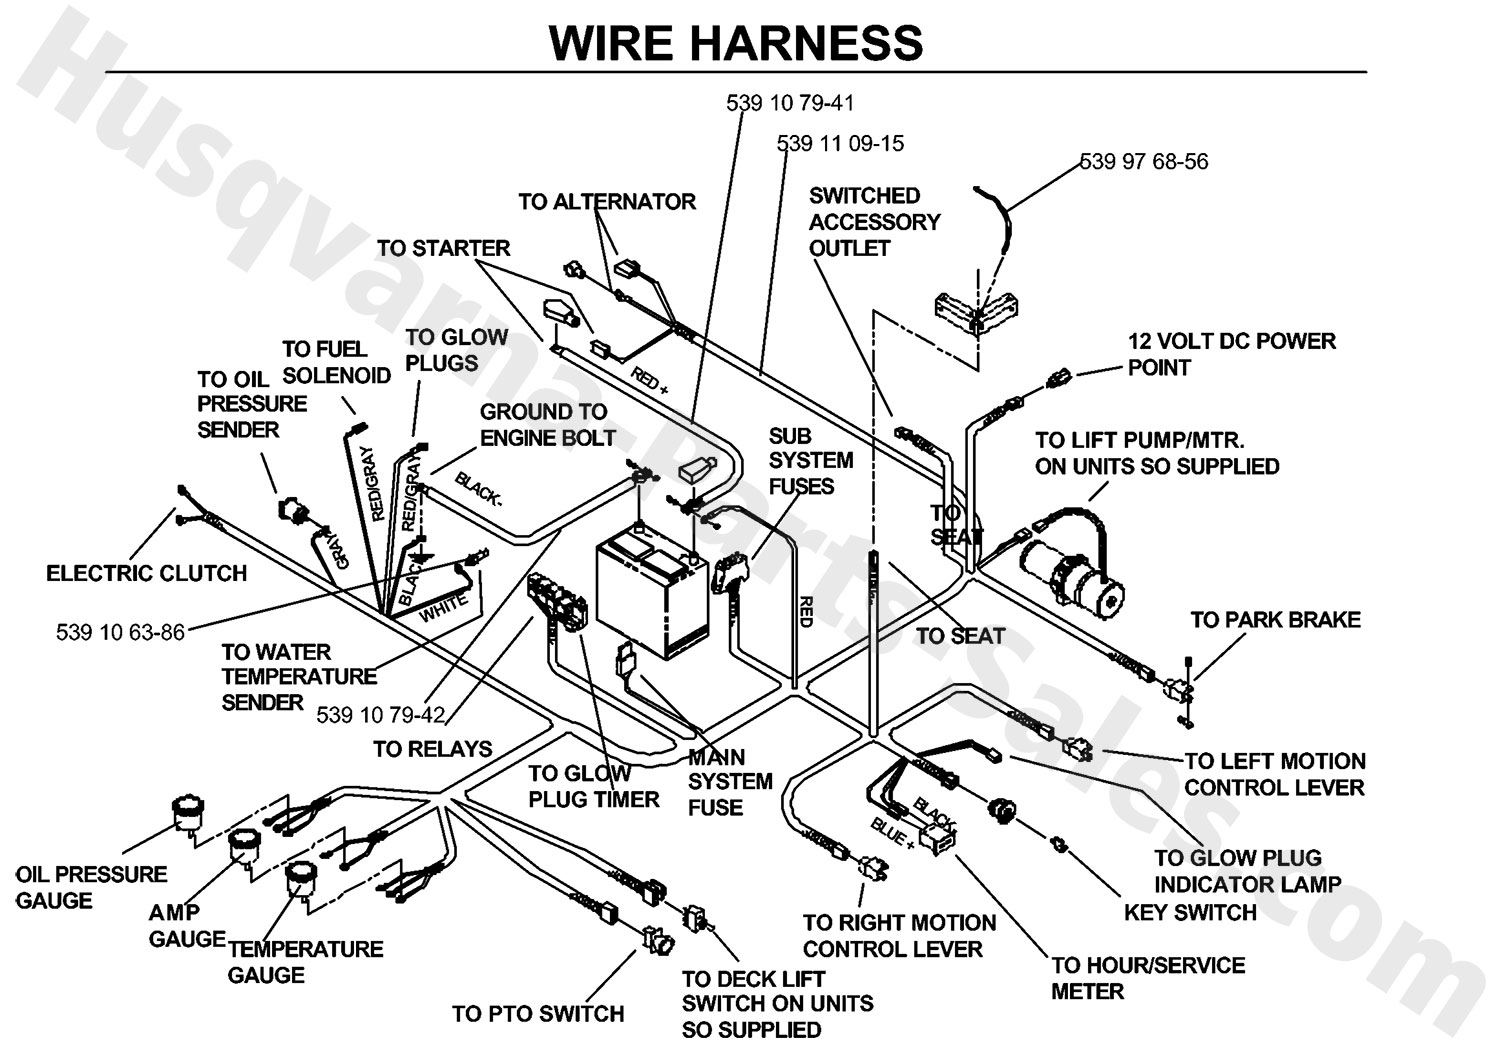 Unique What Gauge Wire For 4000 Watt Amp Component - The Wire ...